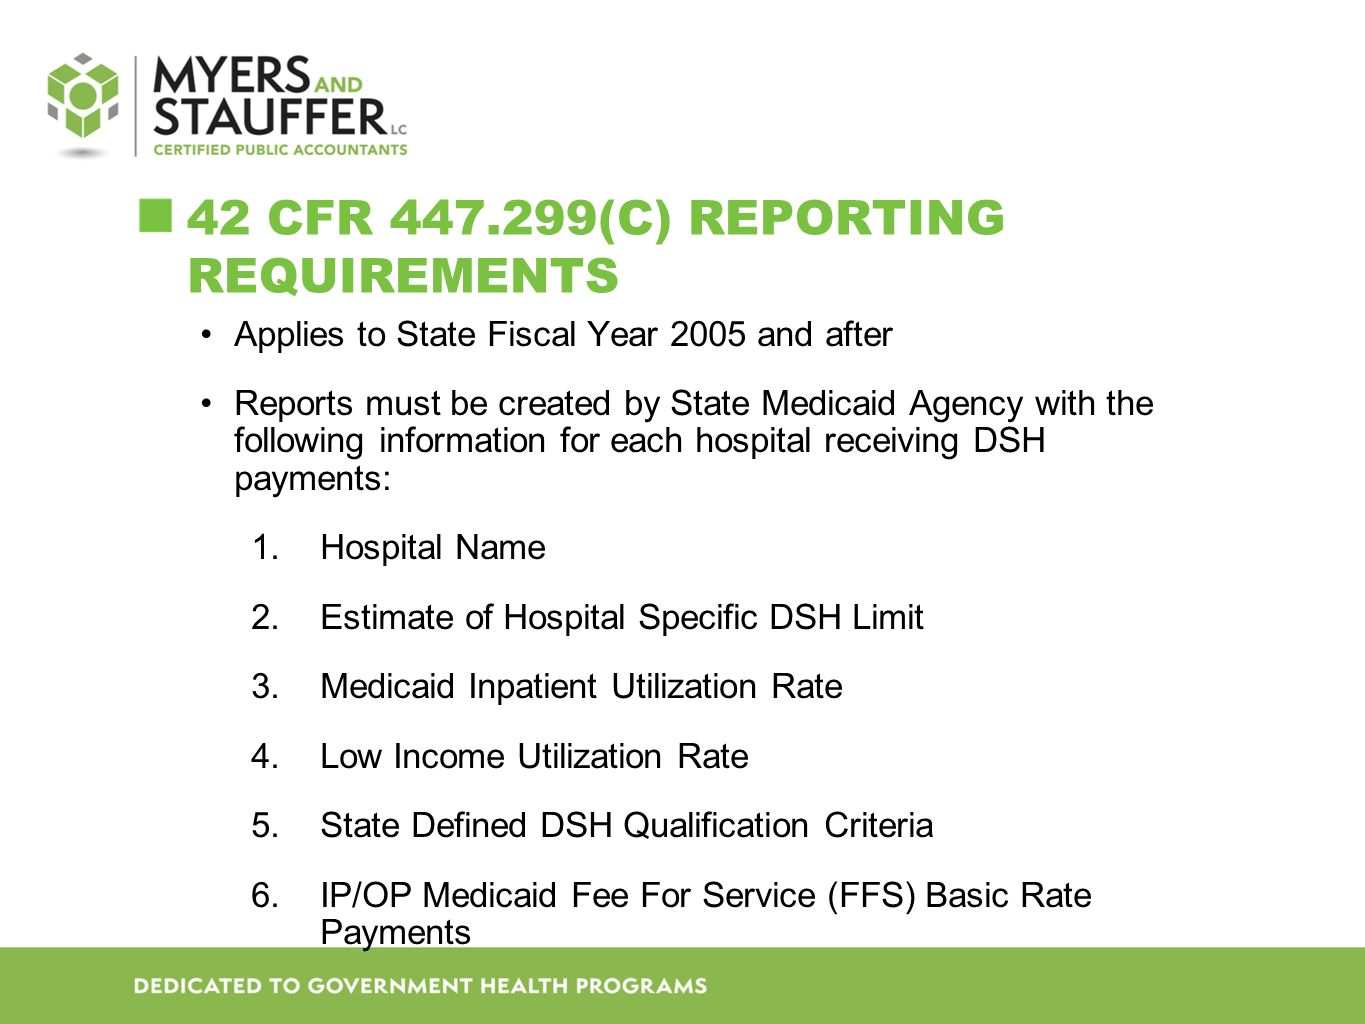 42 CFR 447.299(C) REPORTING REQUIREMENTS Applies to State Fiscal Year 2005 and after Reports must be created by State Medicaid Agency with the following information for each hospital receiving DSH payments: 1.Hospital Name 2.Estimate of Hospital Specific DSH Limit 3.Medicaid Inpatient Utilization Rate 4.Low Income Utilization Rate 5.State Defined DSH Qualification Criteria 6.IP/OP Medicaid Fee For Service (FFS) Basic Rate Payments